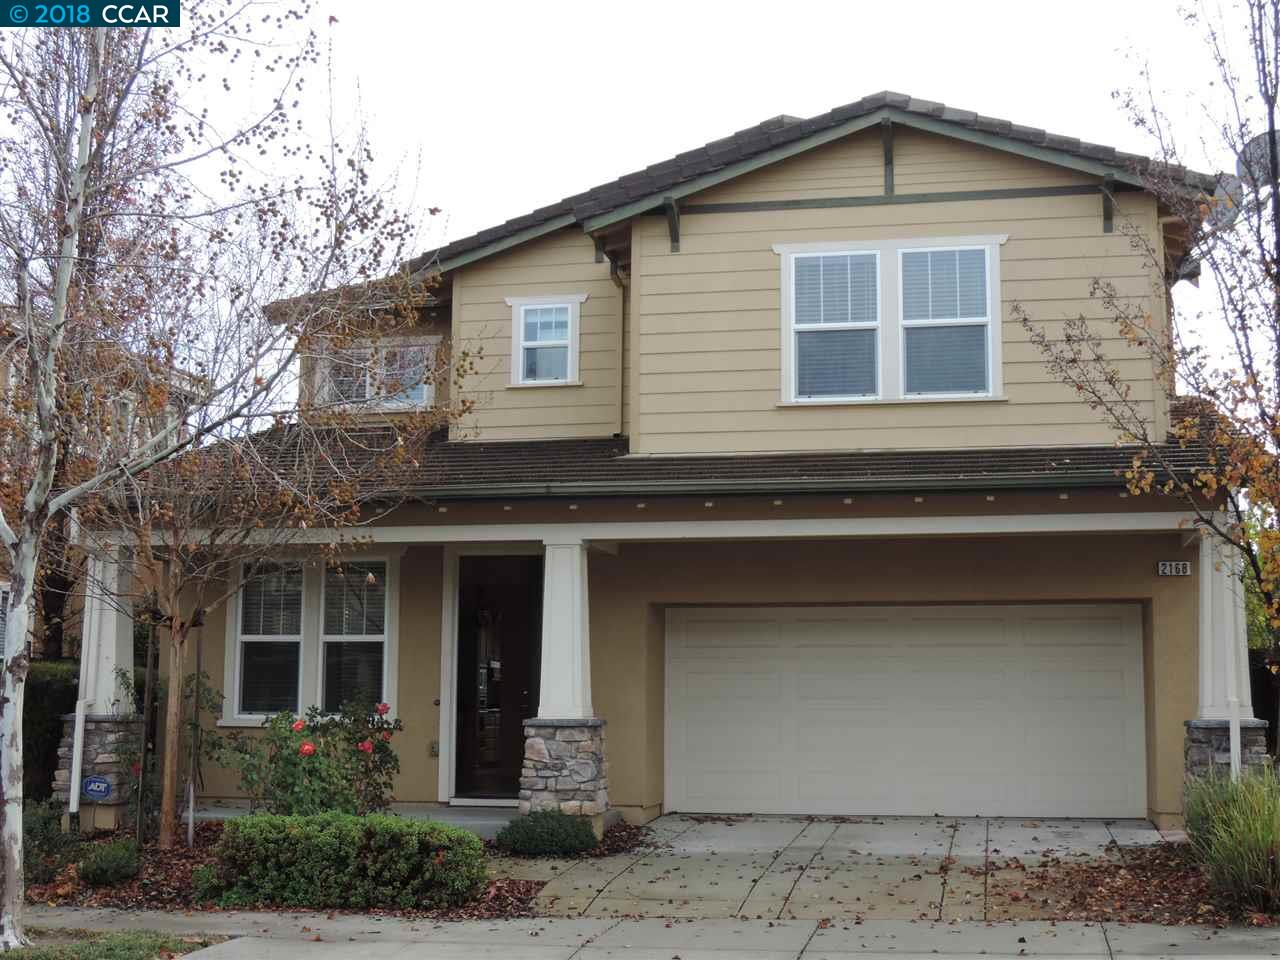 واحد منزل الأسرة للـ Rent في 2168 Arlington Way 2168 Arlington Way San Ramon, California 94582 United States